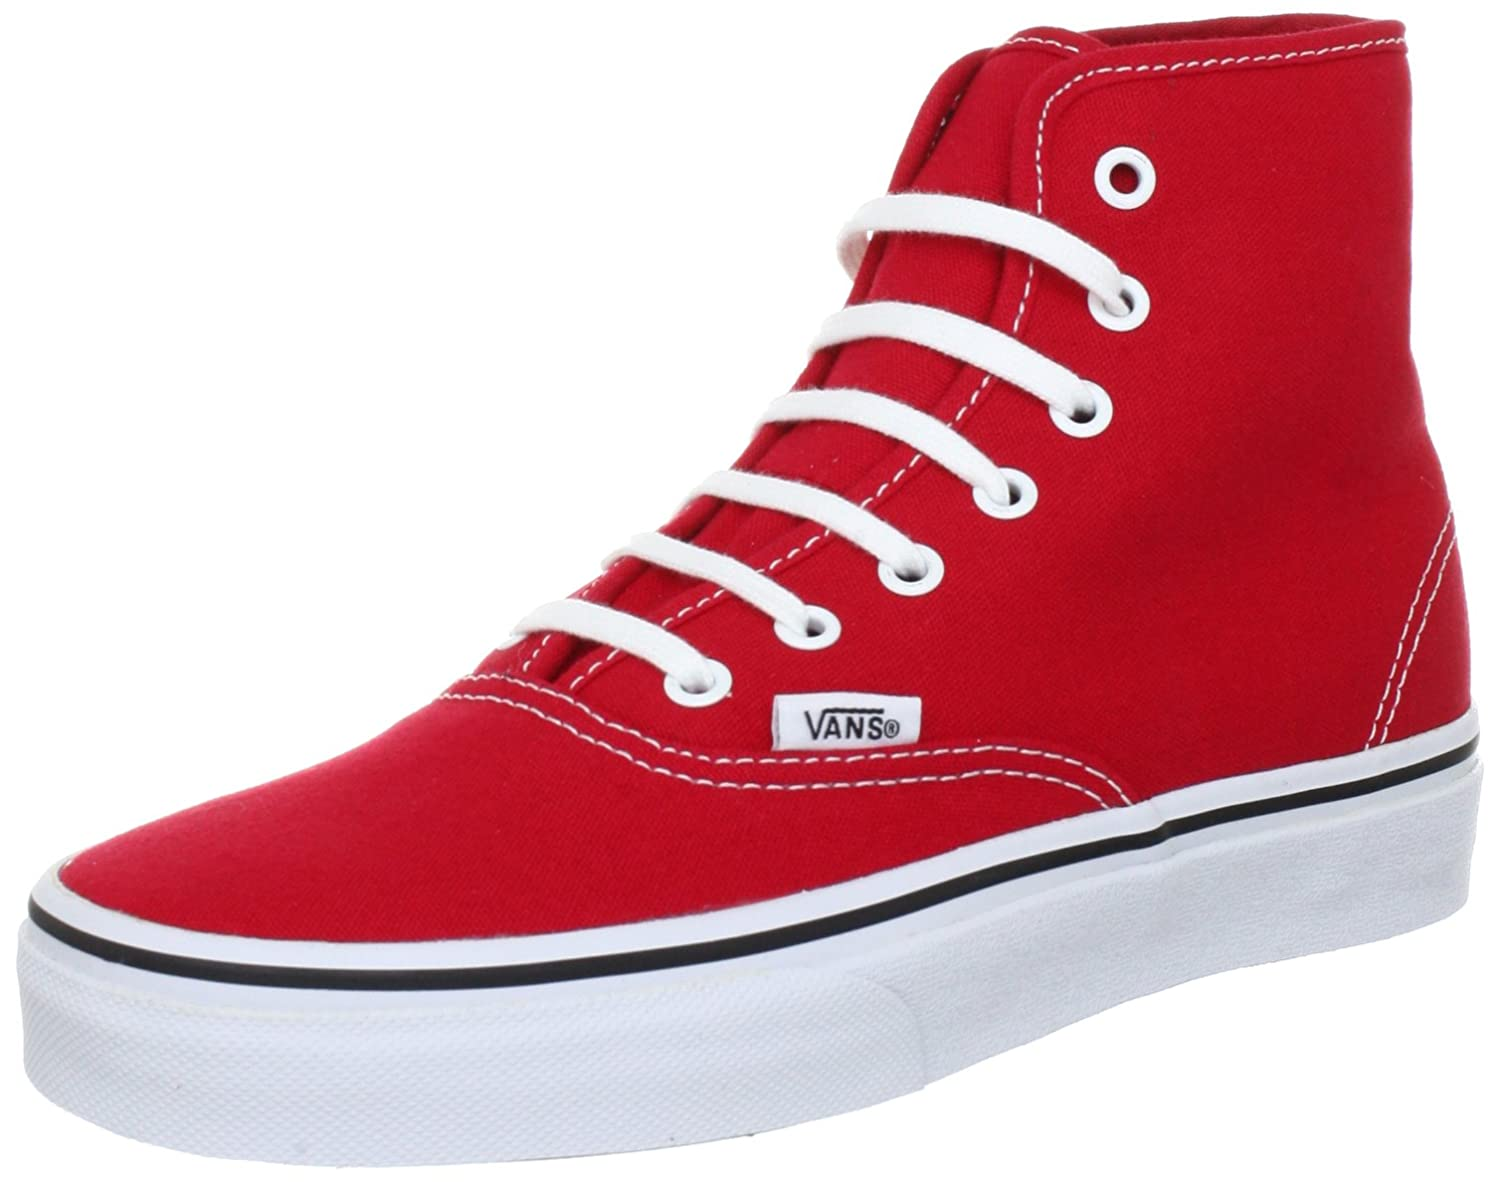 vans shoes red and white. amazon.com | vans authentic hi, black/true white, us 4 m skateboarding shoes red and white